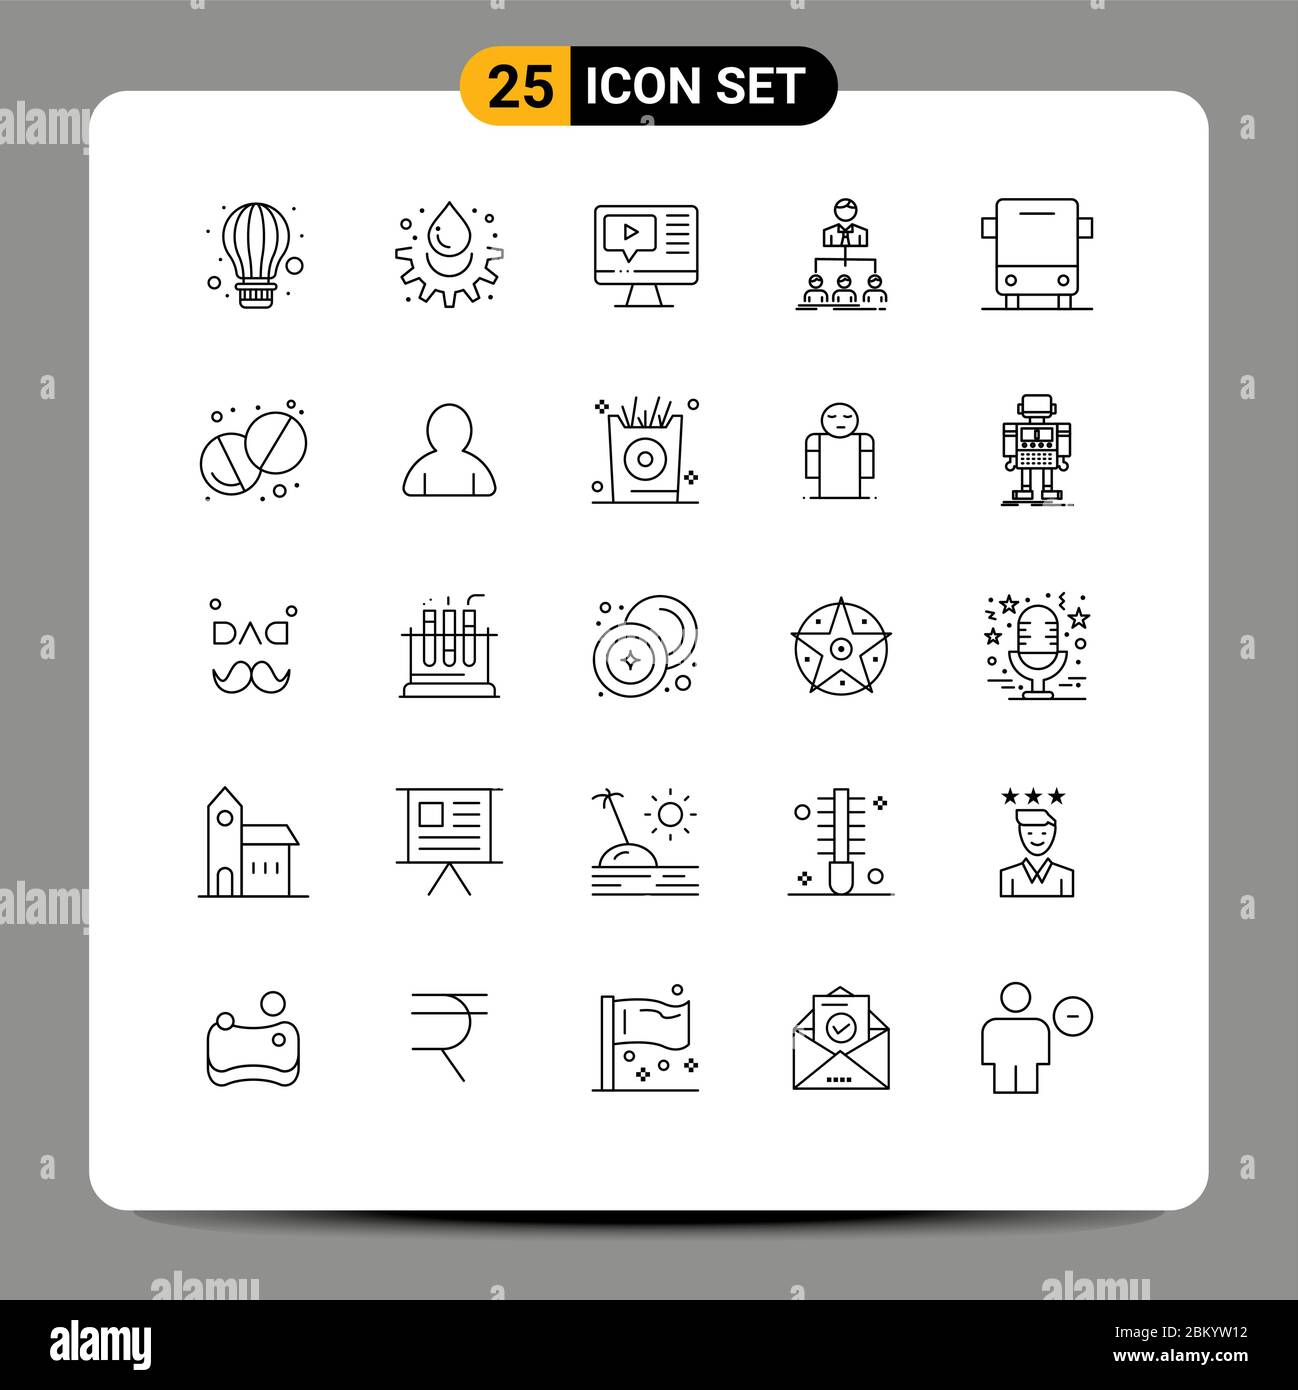 User Interface Pack Of 25 Basic Lines Of Bus Group Computer Organization Team Editable Vector Design Elements Stock Vector Image Art Alamy